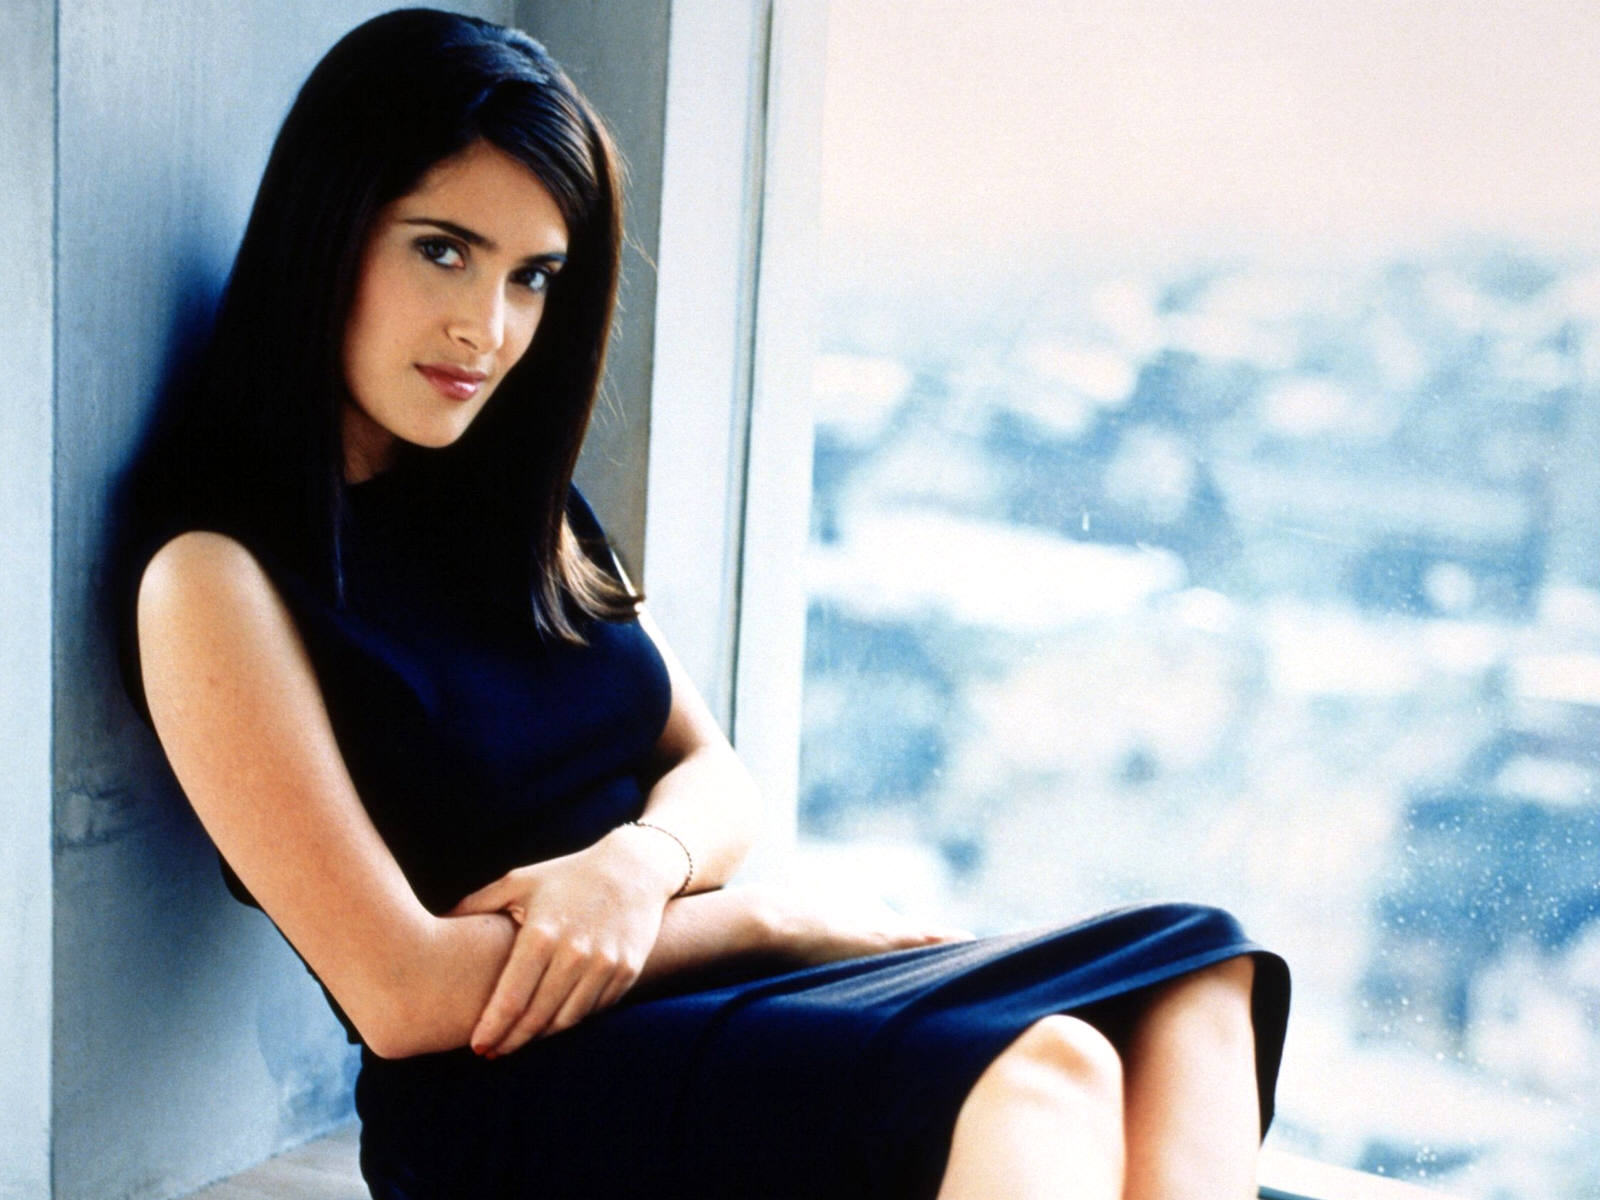 50 Best Salma Hayek Wallpapers and Pics PhotoShotoh